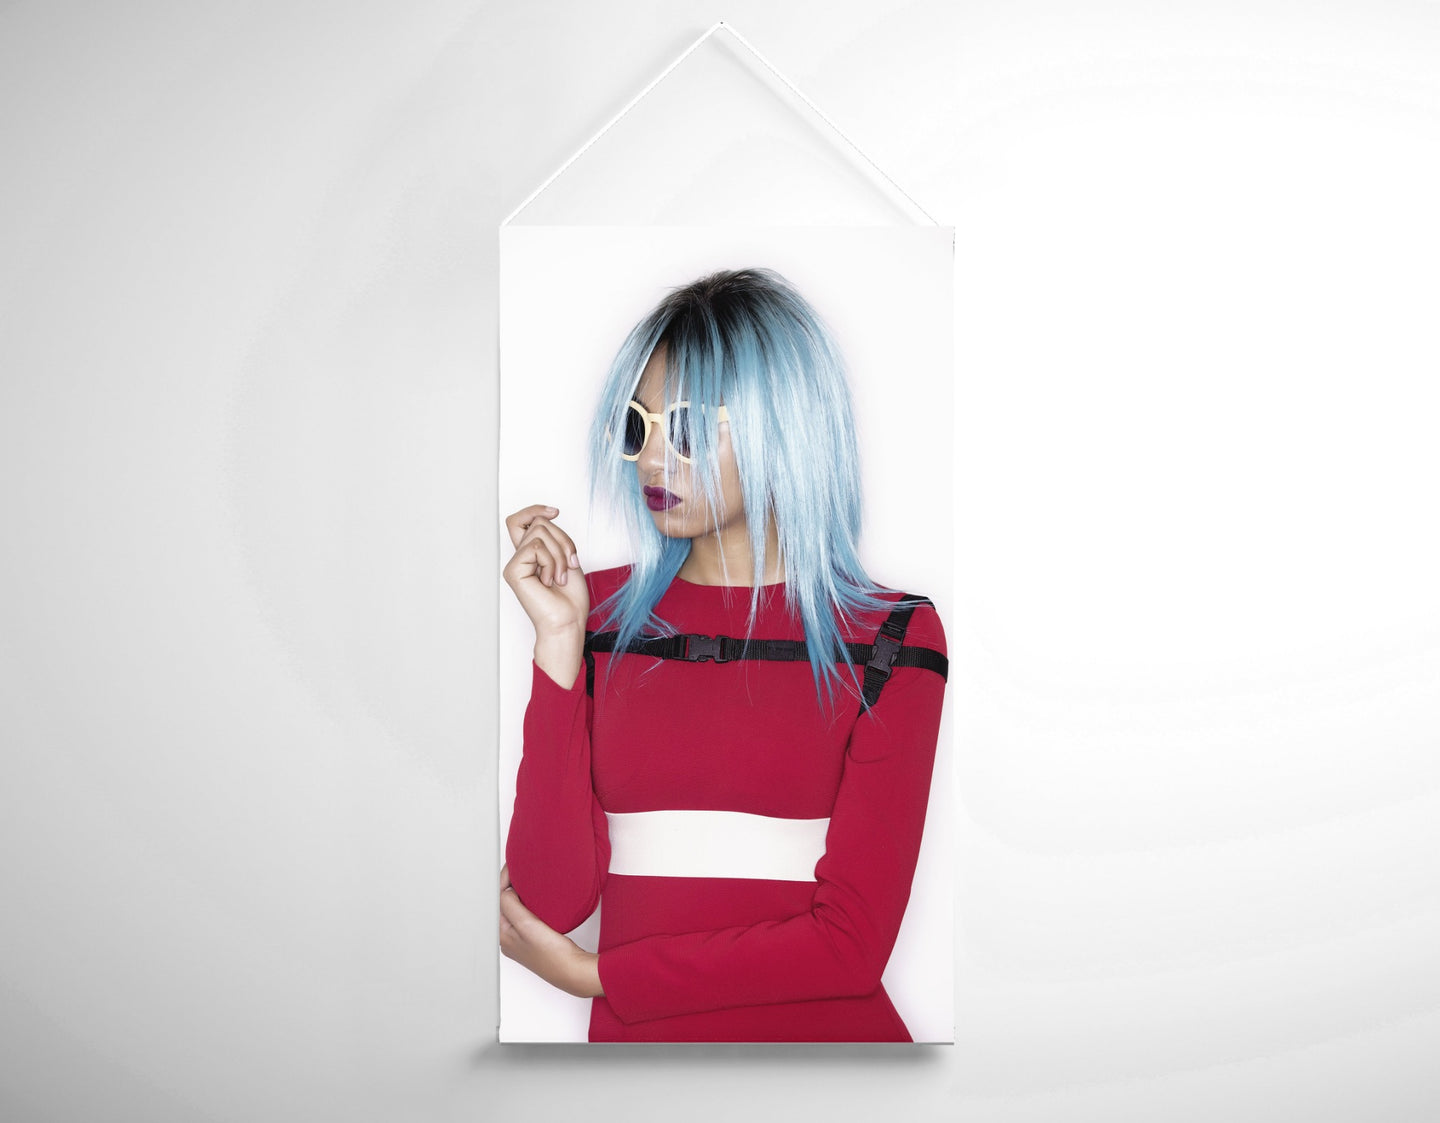 Salon Banner - Woman with Blue Bob Hairstyle in Red Dress